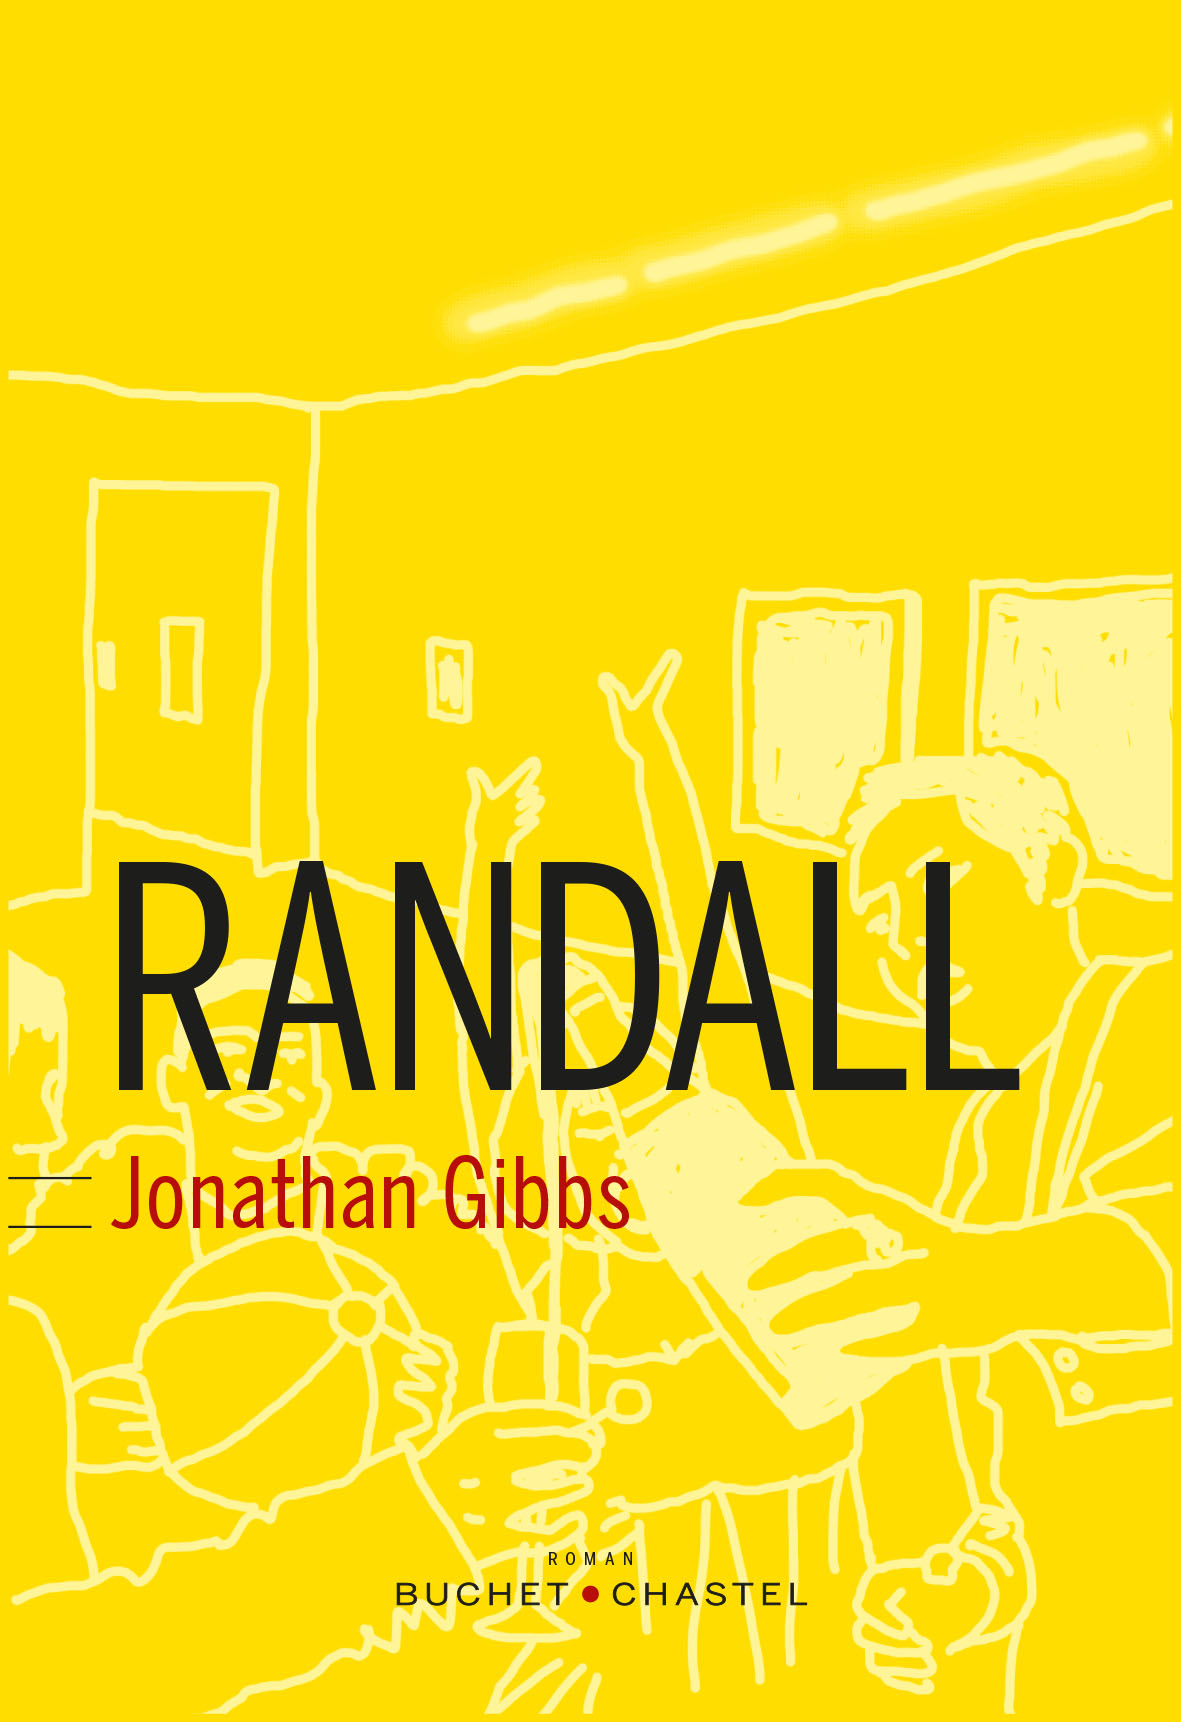 The French cover for 'Randall'